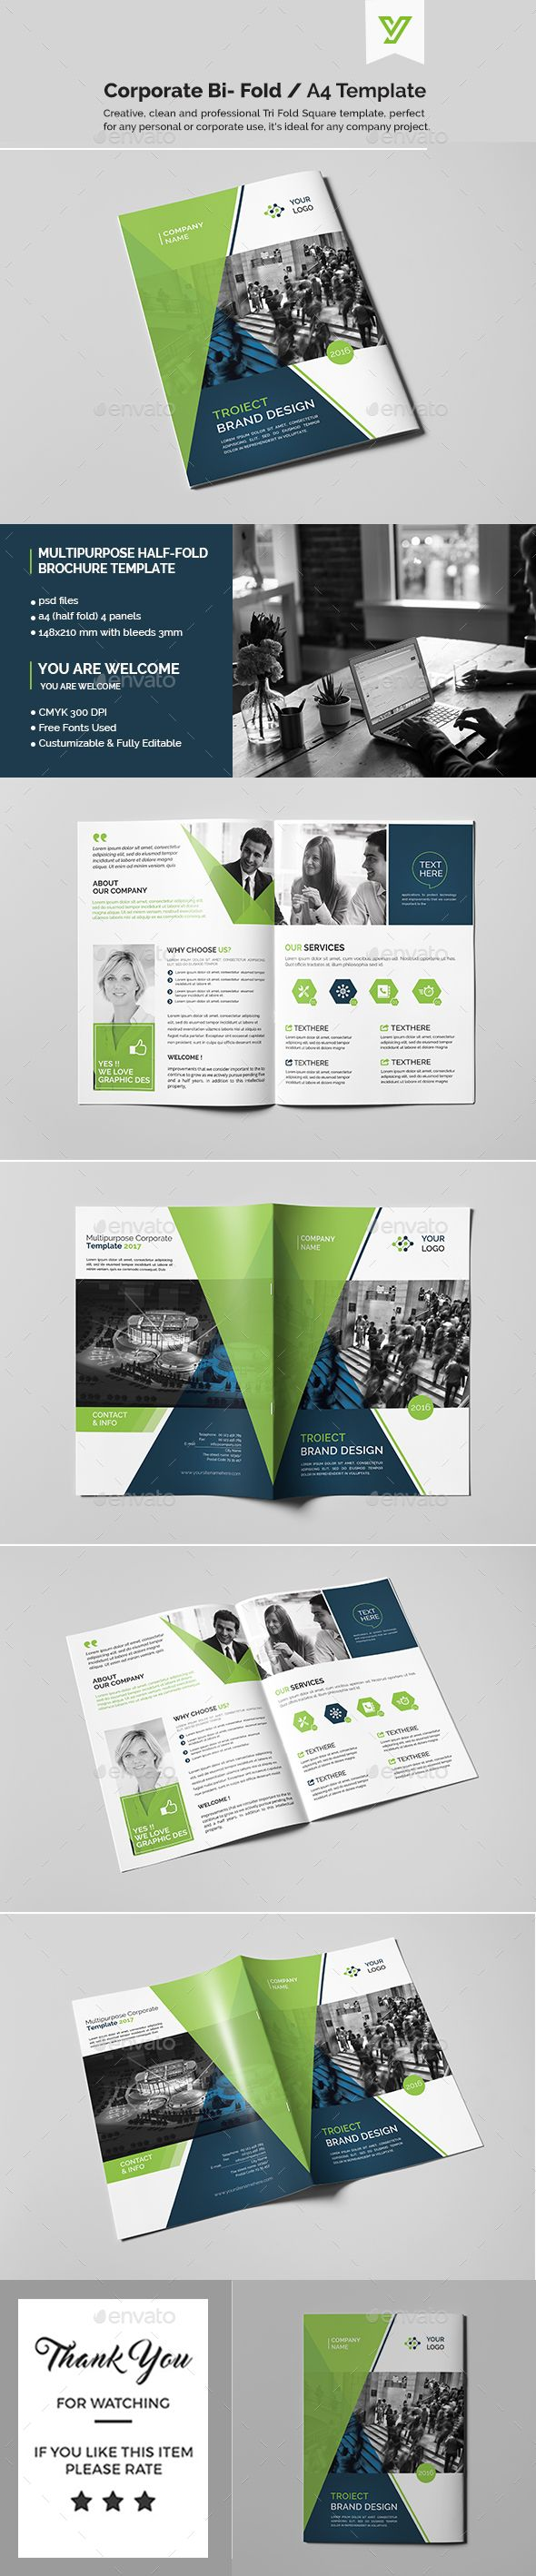 corporate corporate bi fold brochure template